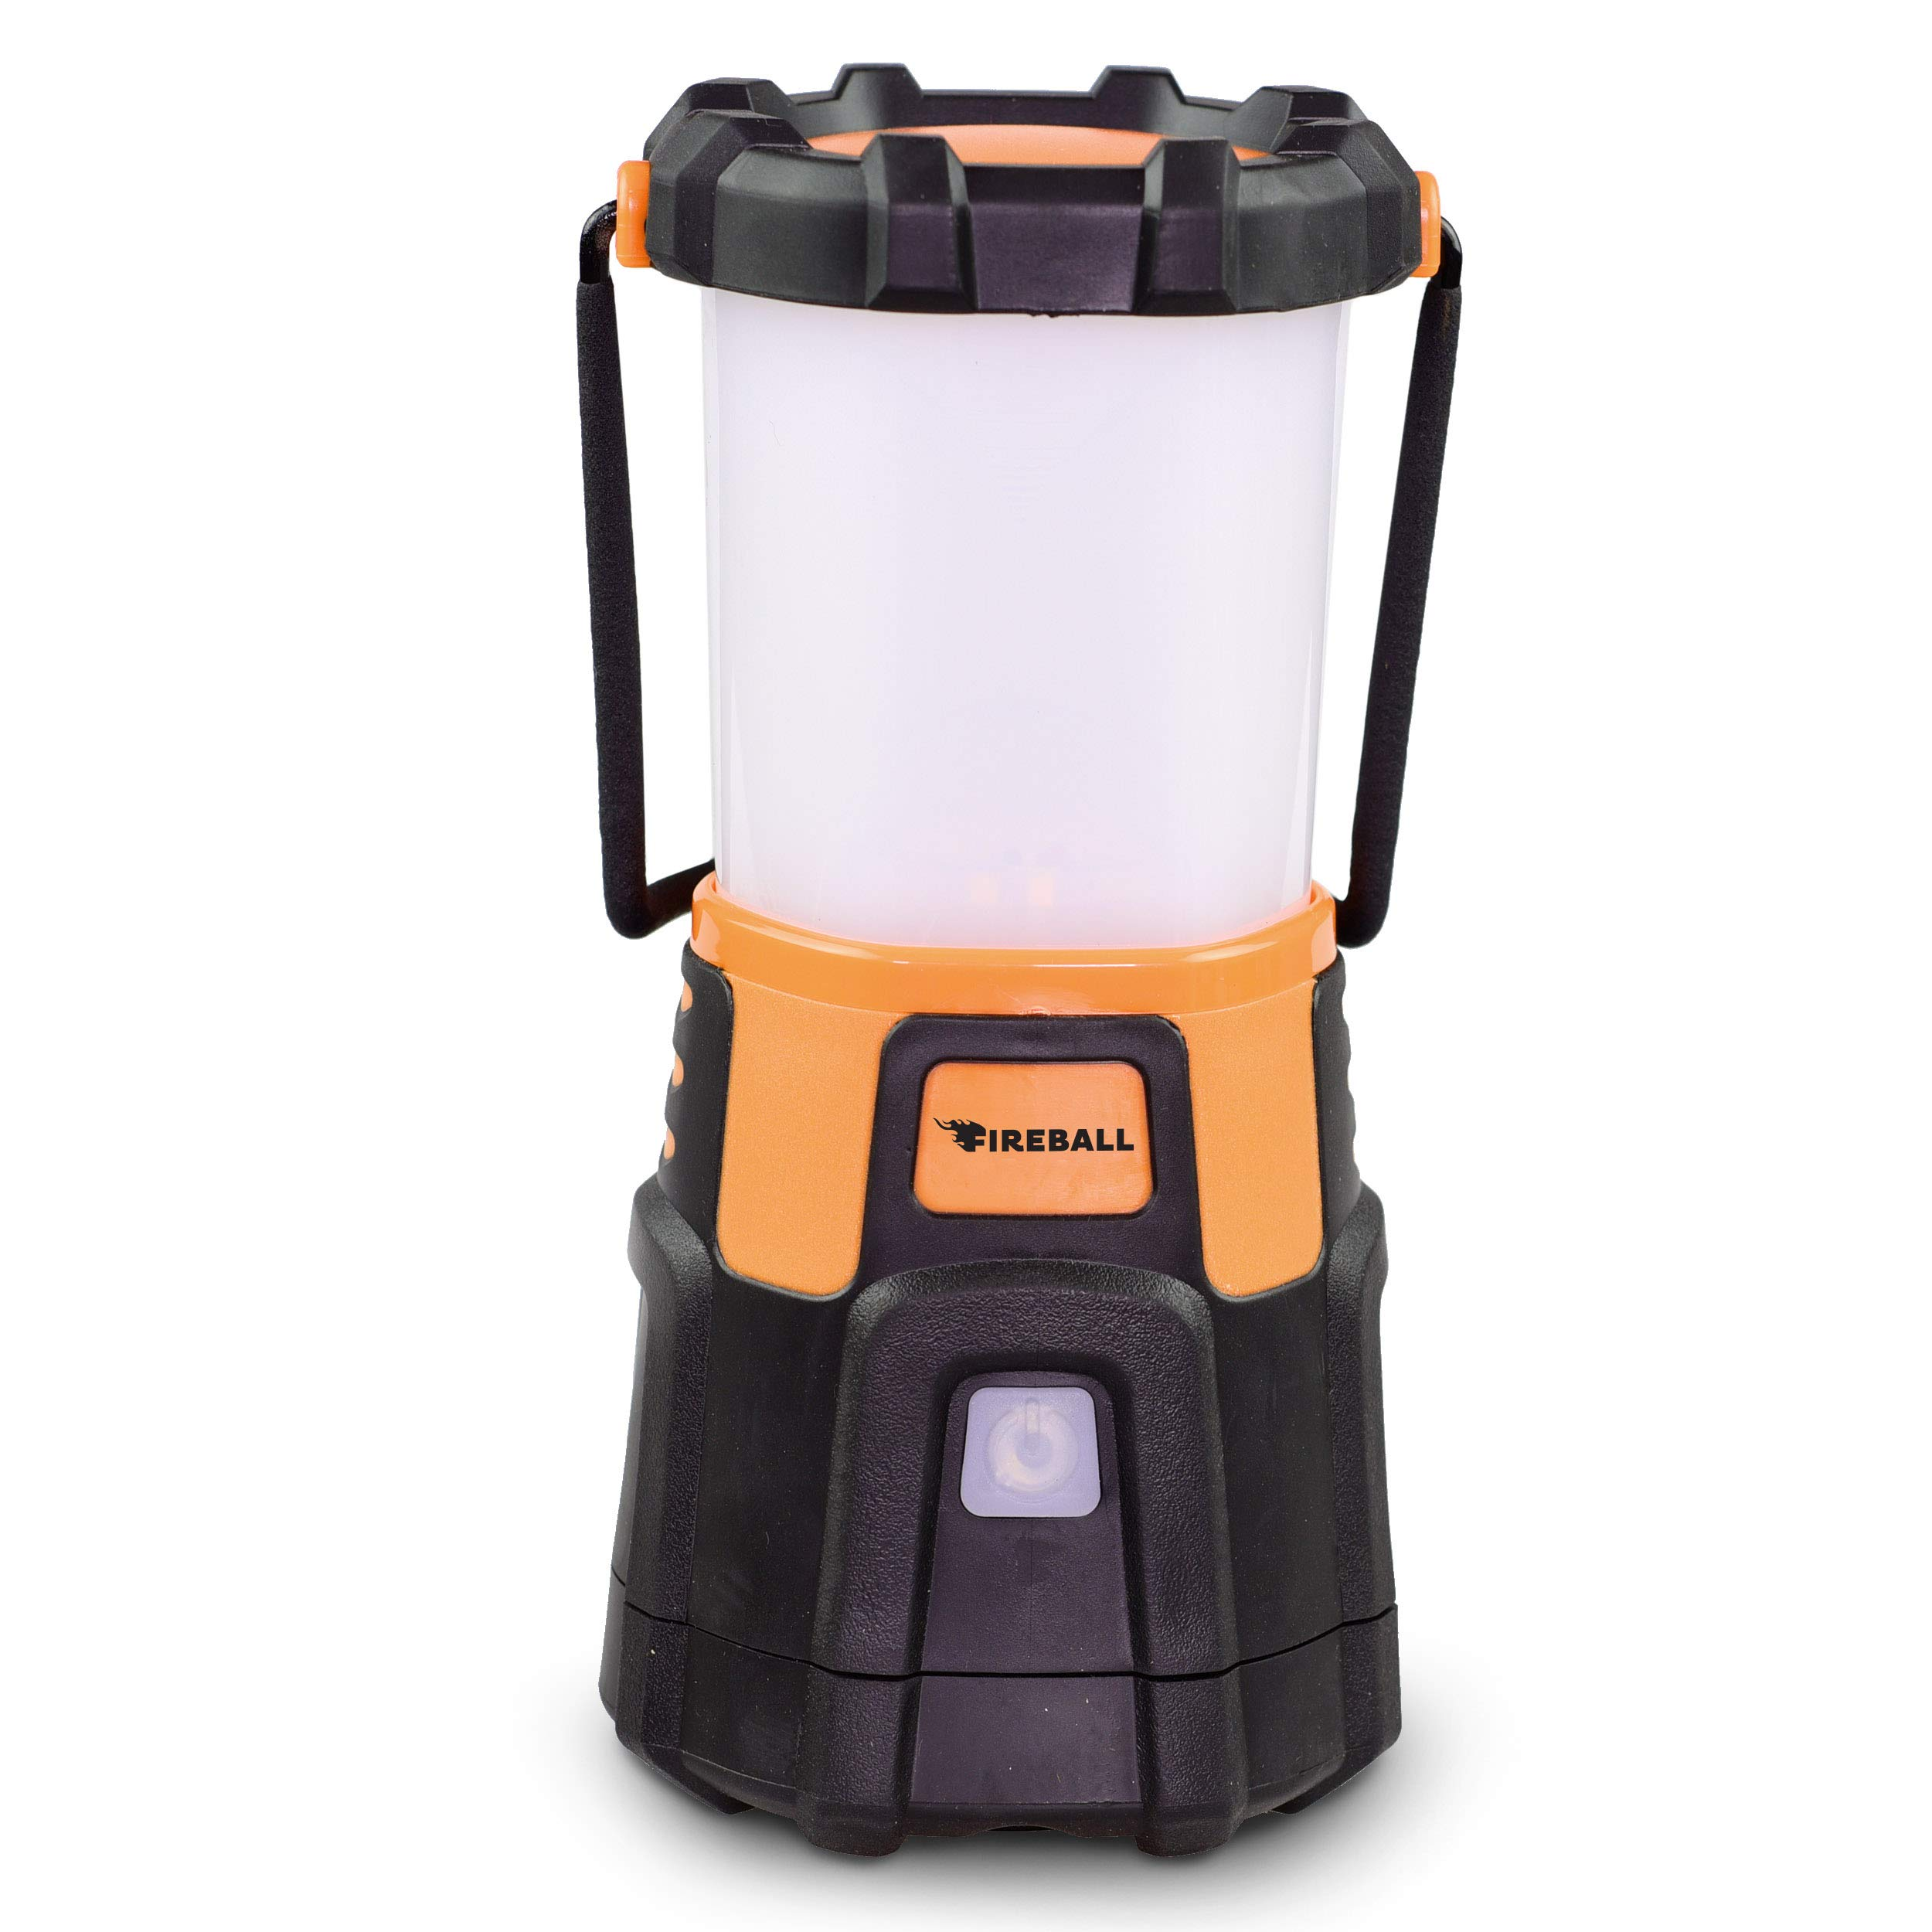 Blazin' Fireball | Brightest Lanterns Battery Powered | LED Hurricane Lantern | Emergency, Storm, Camping Torch | Battery Operated Lights | 1000 Lumen Lantern